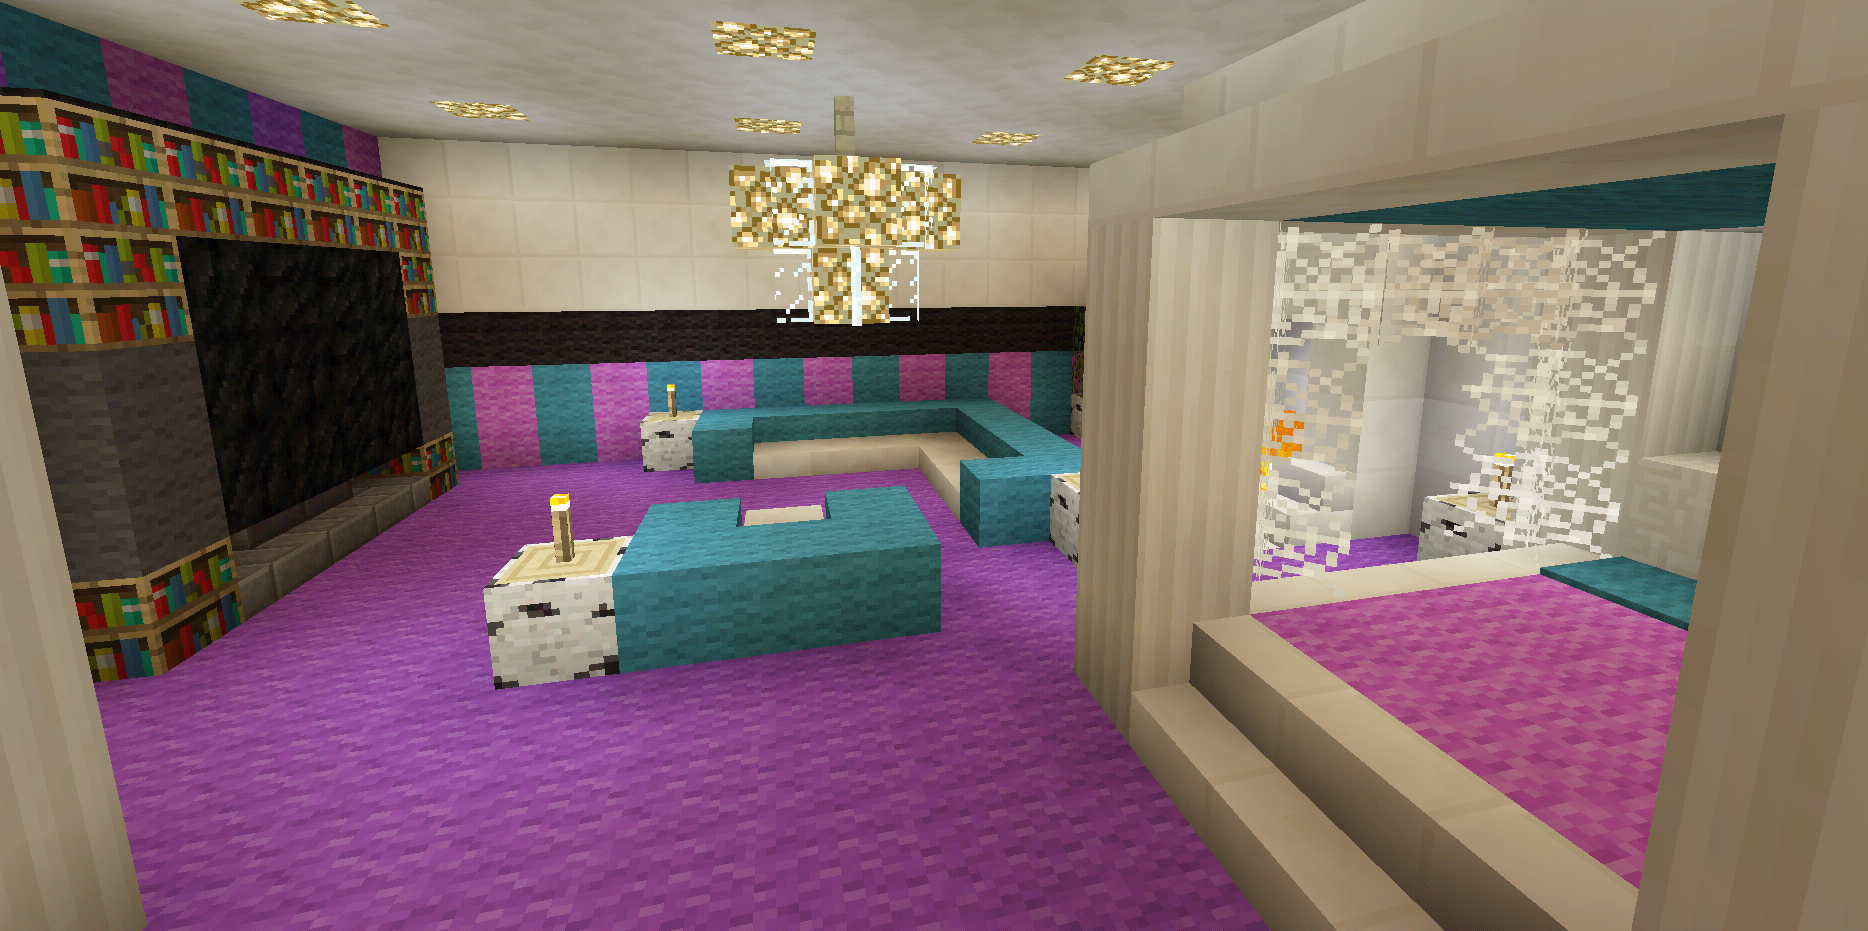 Minecraft Furniture Bedroom minecraft bedroom pink girl purple wallpaper wall design canopy